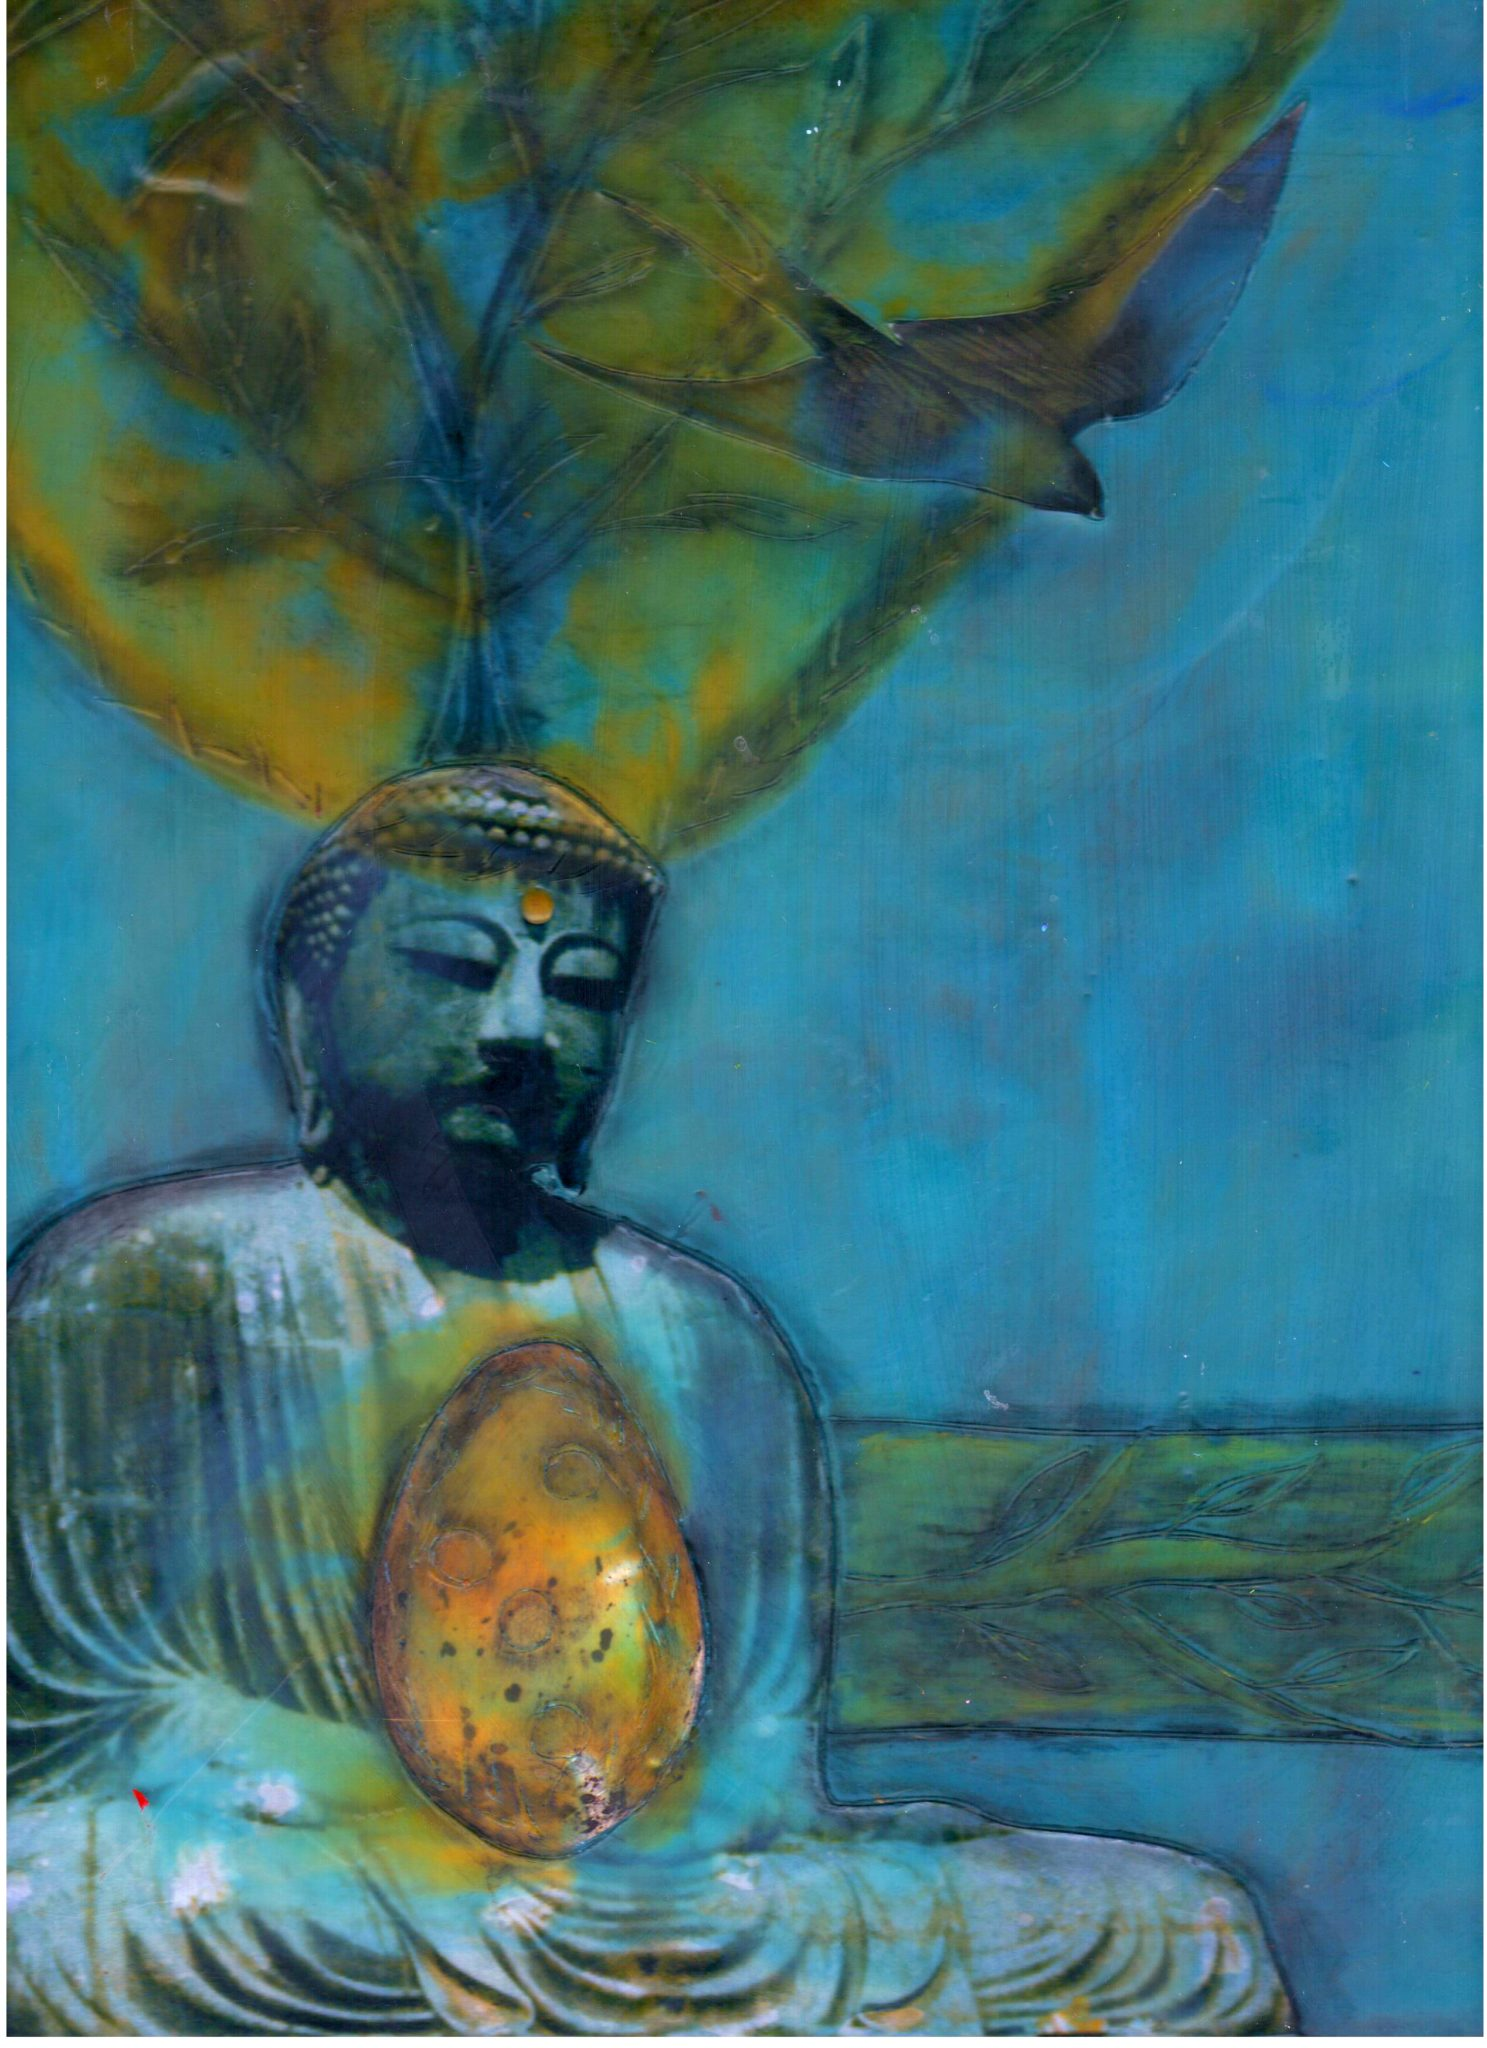 Buddha's Creativity, mixed media encaustic by Courtney Putnam